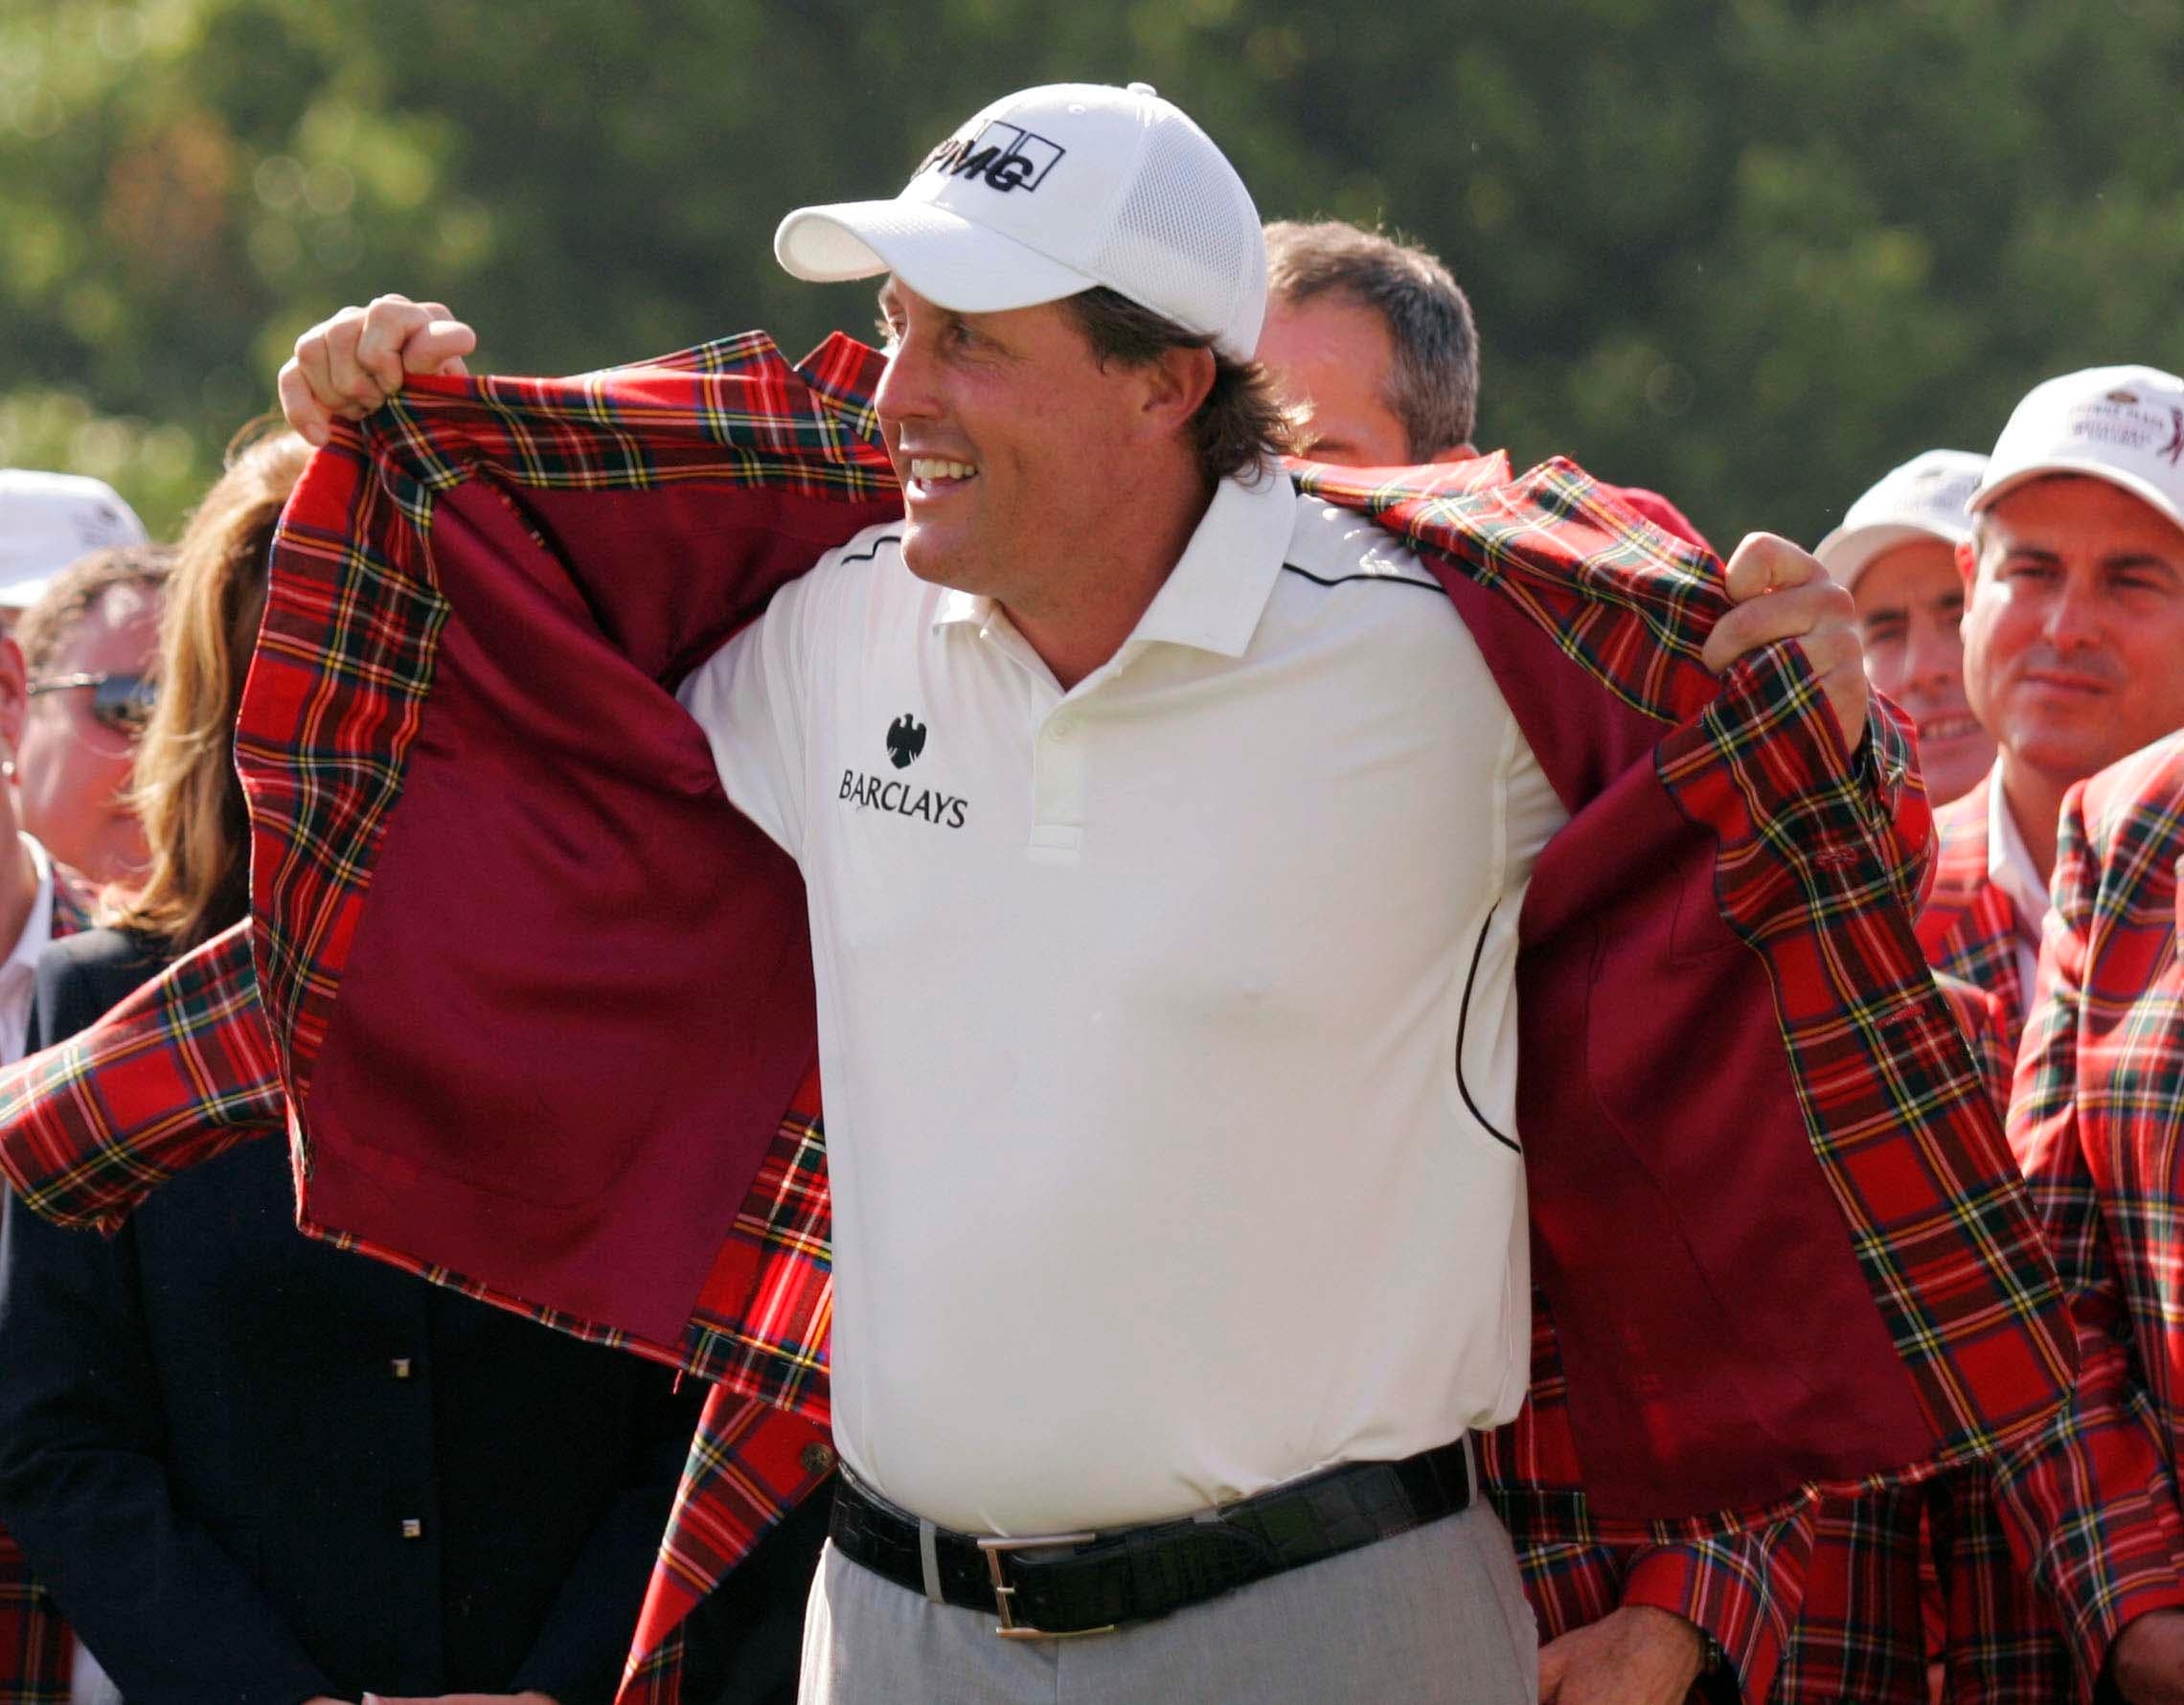 5. 2008: Mickelson's miracle shot